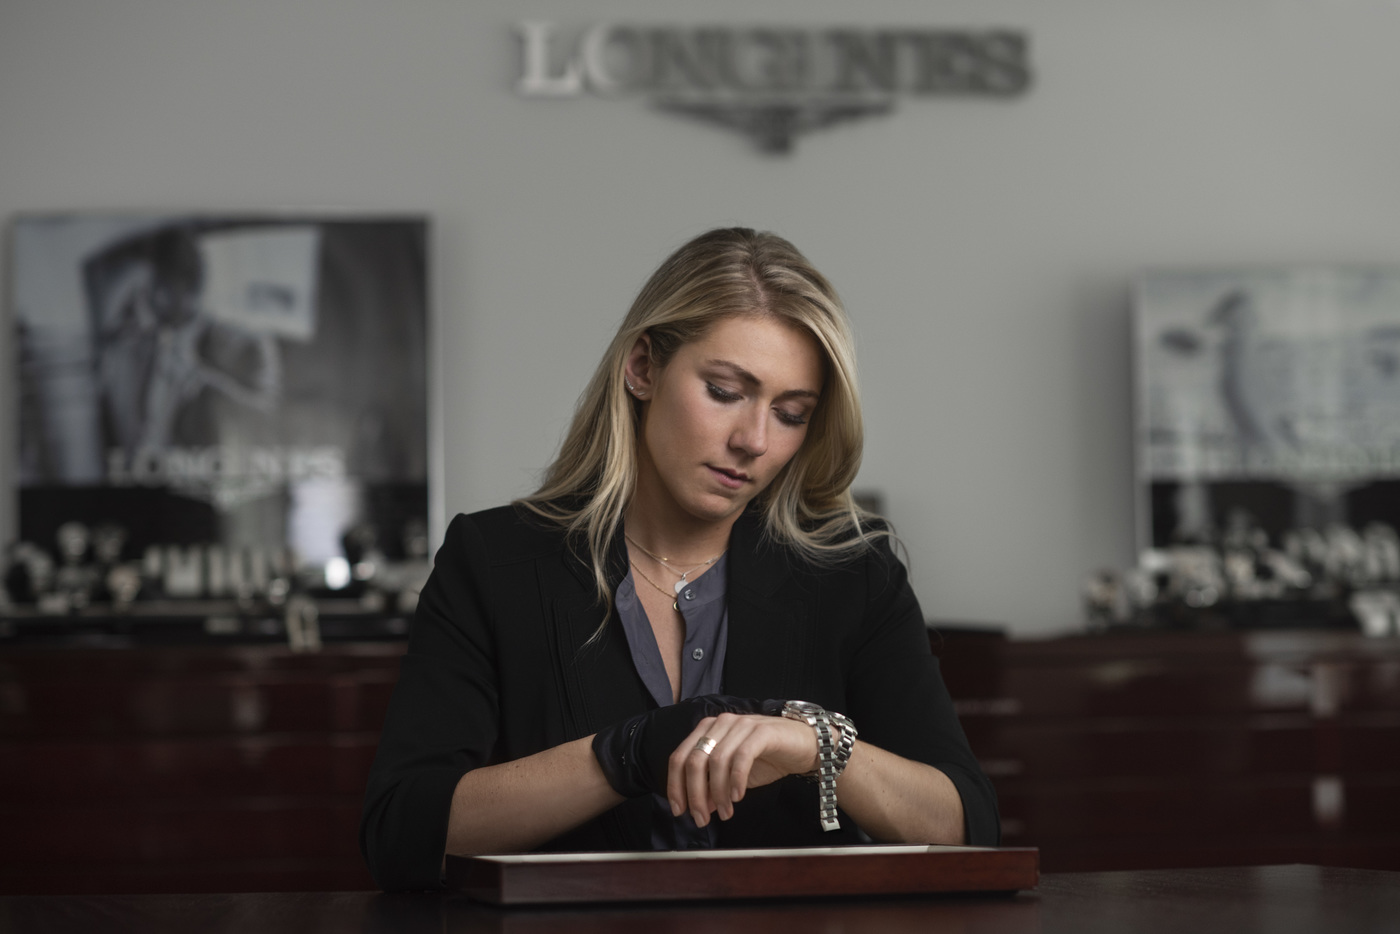 Longines Corporate Event: Longines receives the visit of ski champion and Ambassador of Elegance Mikaela Shiffrin at its headquarters in Saint-Imier 10